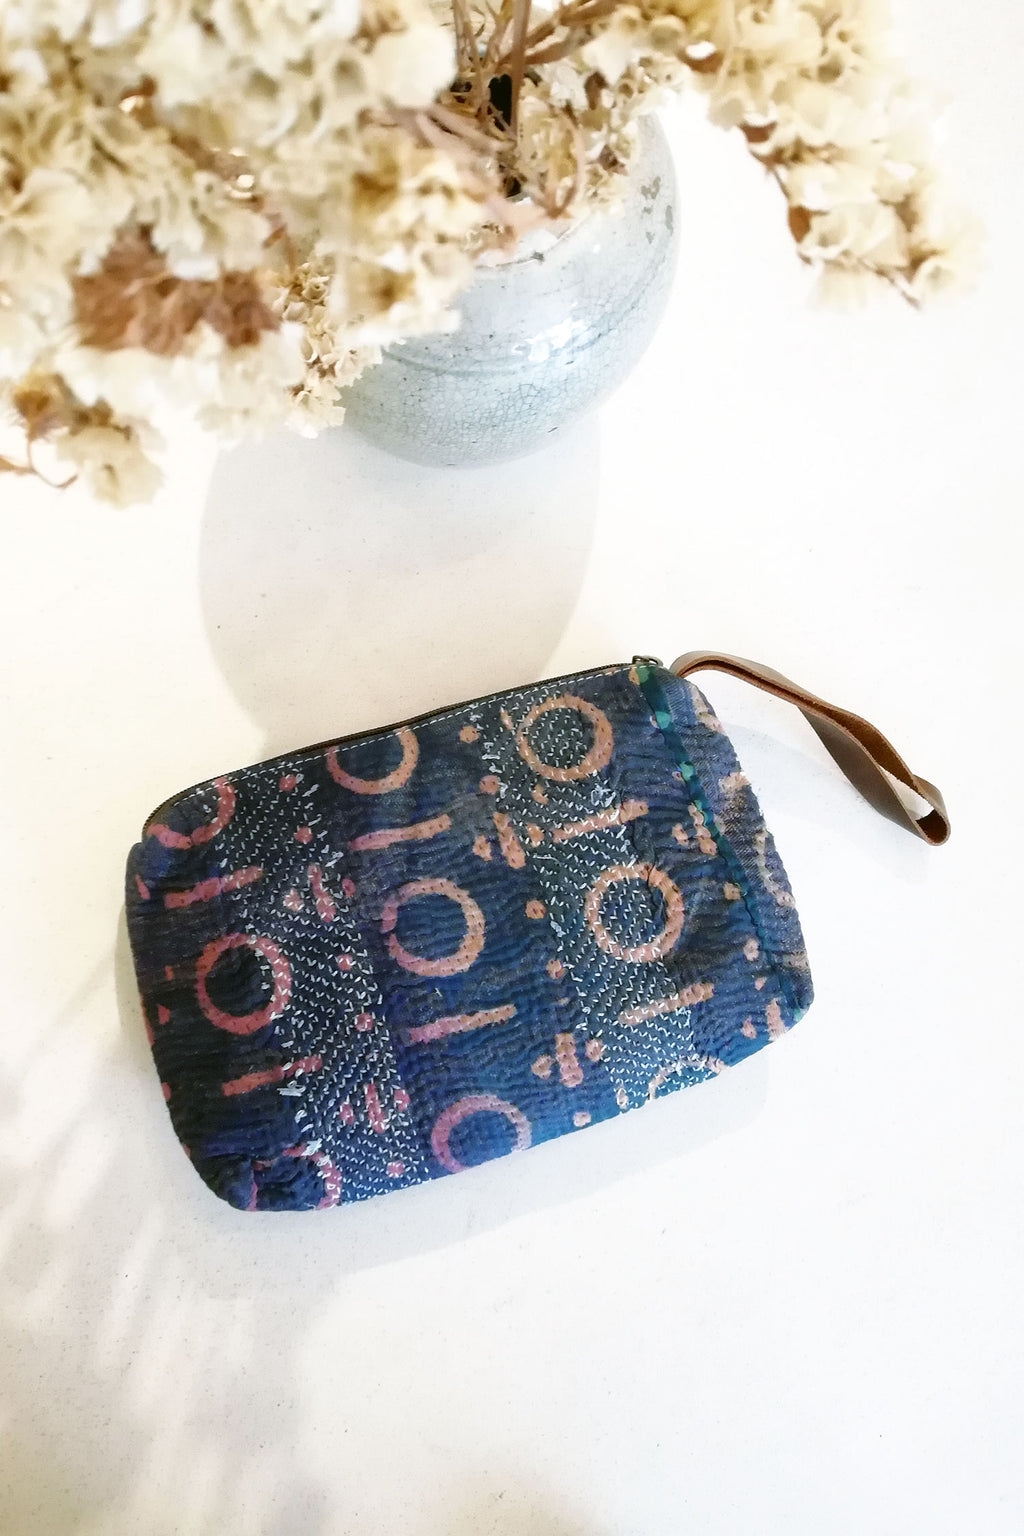 Unisex Boho Wrist Clutch in Dark Blue